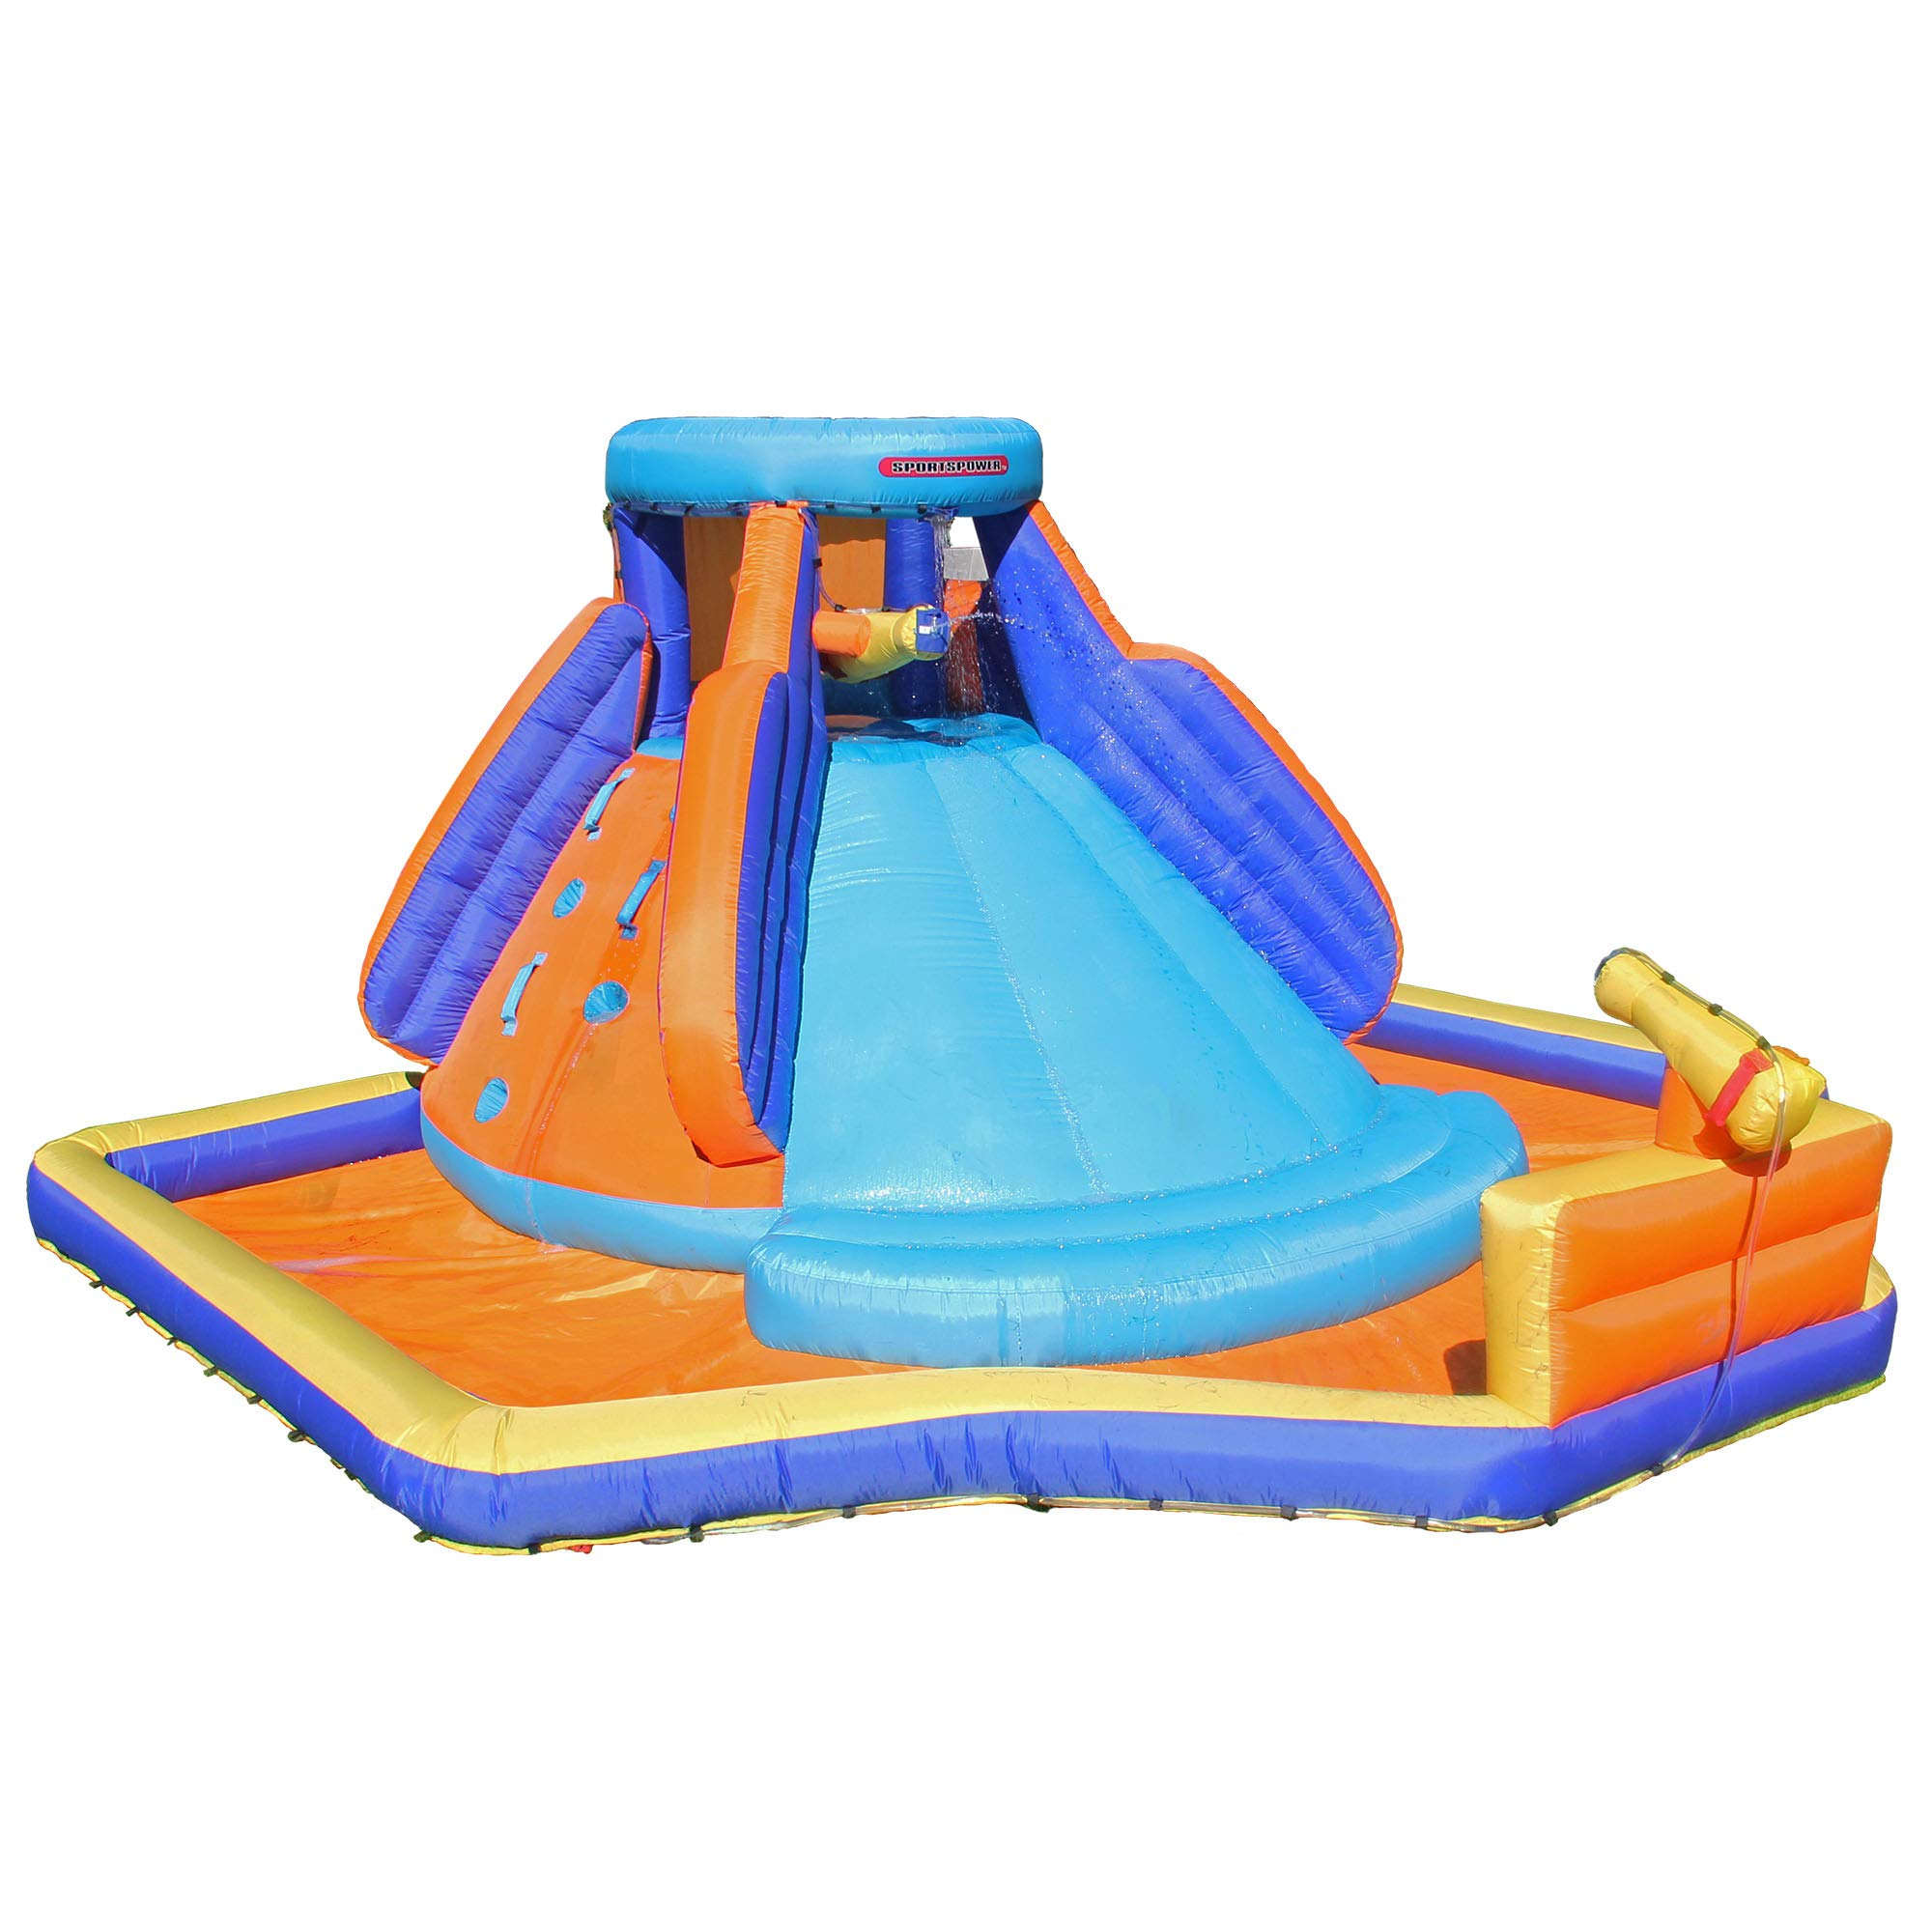 Sportspower Battle Ridge Inflatable Water Slide with Water Cannons and Climbing Wall by Sportspower